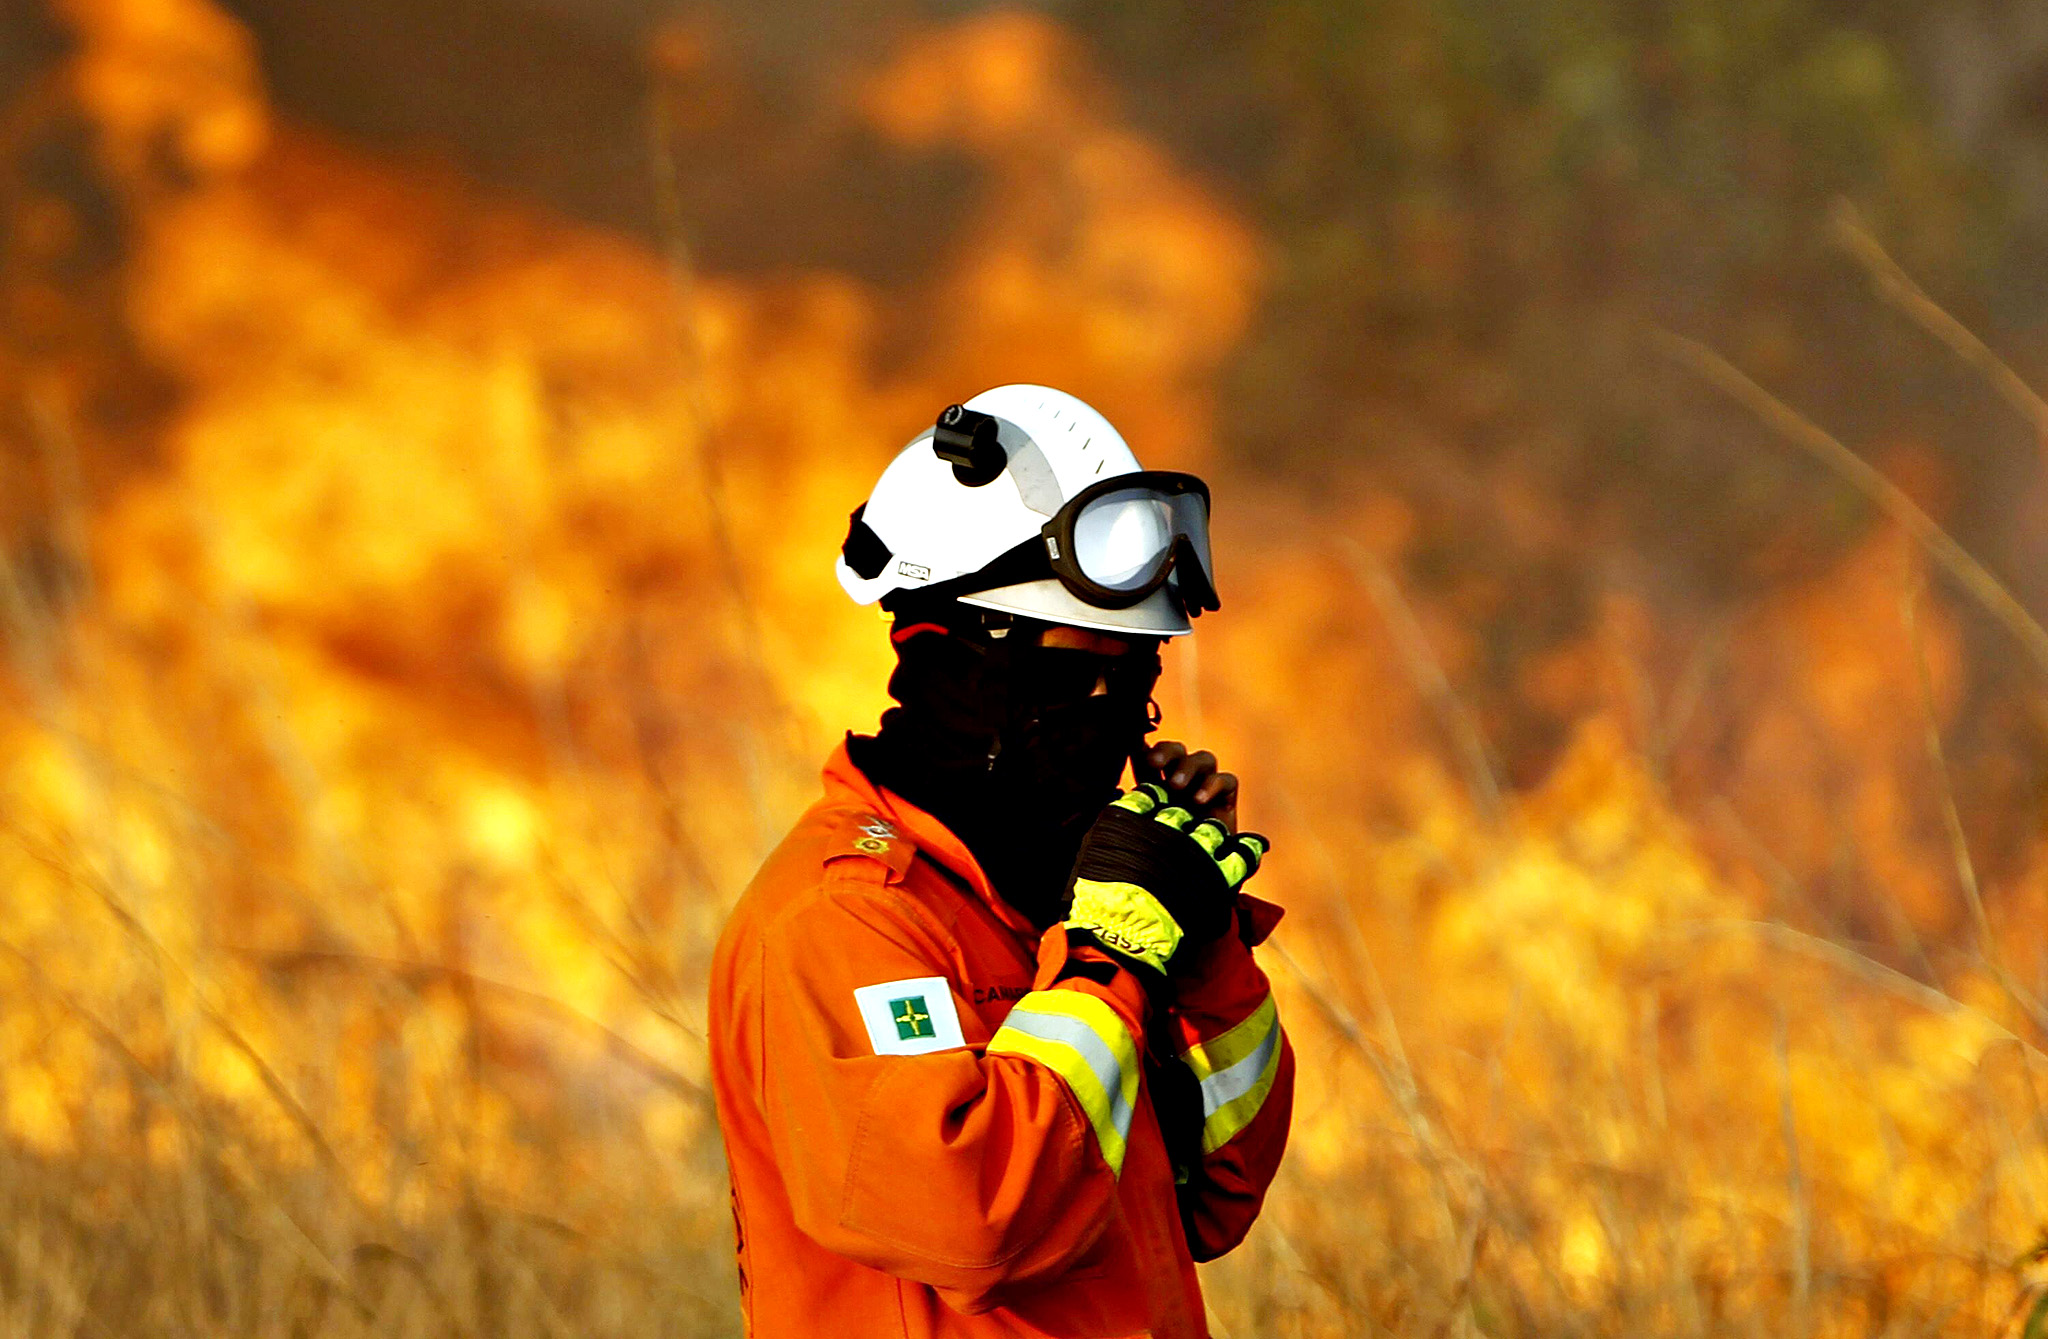 A firefighter adjusts his safety helmet as he tries to extinguish a fire at the park Floresta Nacional in Brasilia, Brazil, 01 September 2014. Six teams, a helicopter and an aircraft were mobilized to contain the fire. The Brazilian capital suffers of current low humidity and a period of drought.